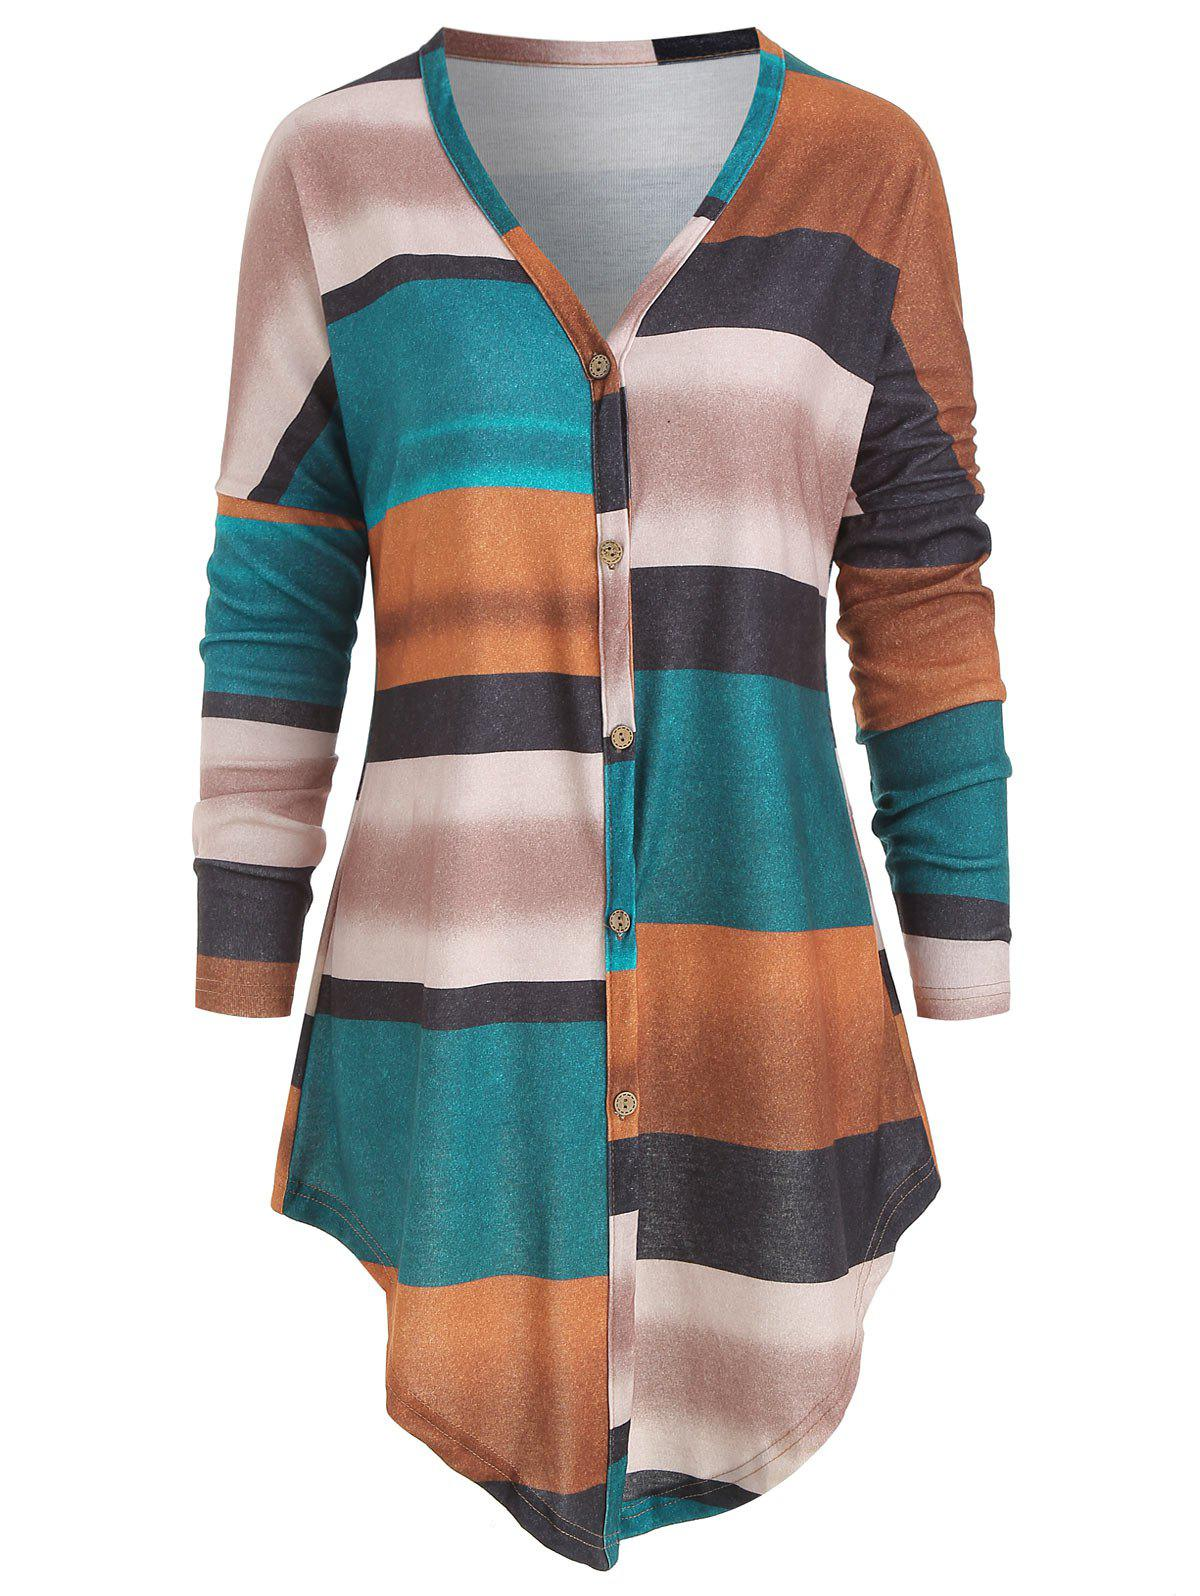 Long Sleeve Knotted Striped Top - multicolor A L